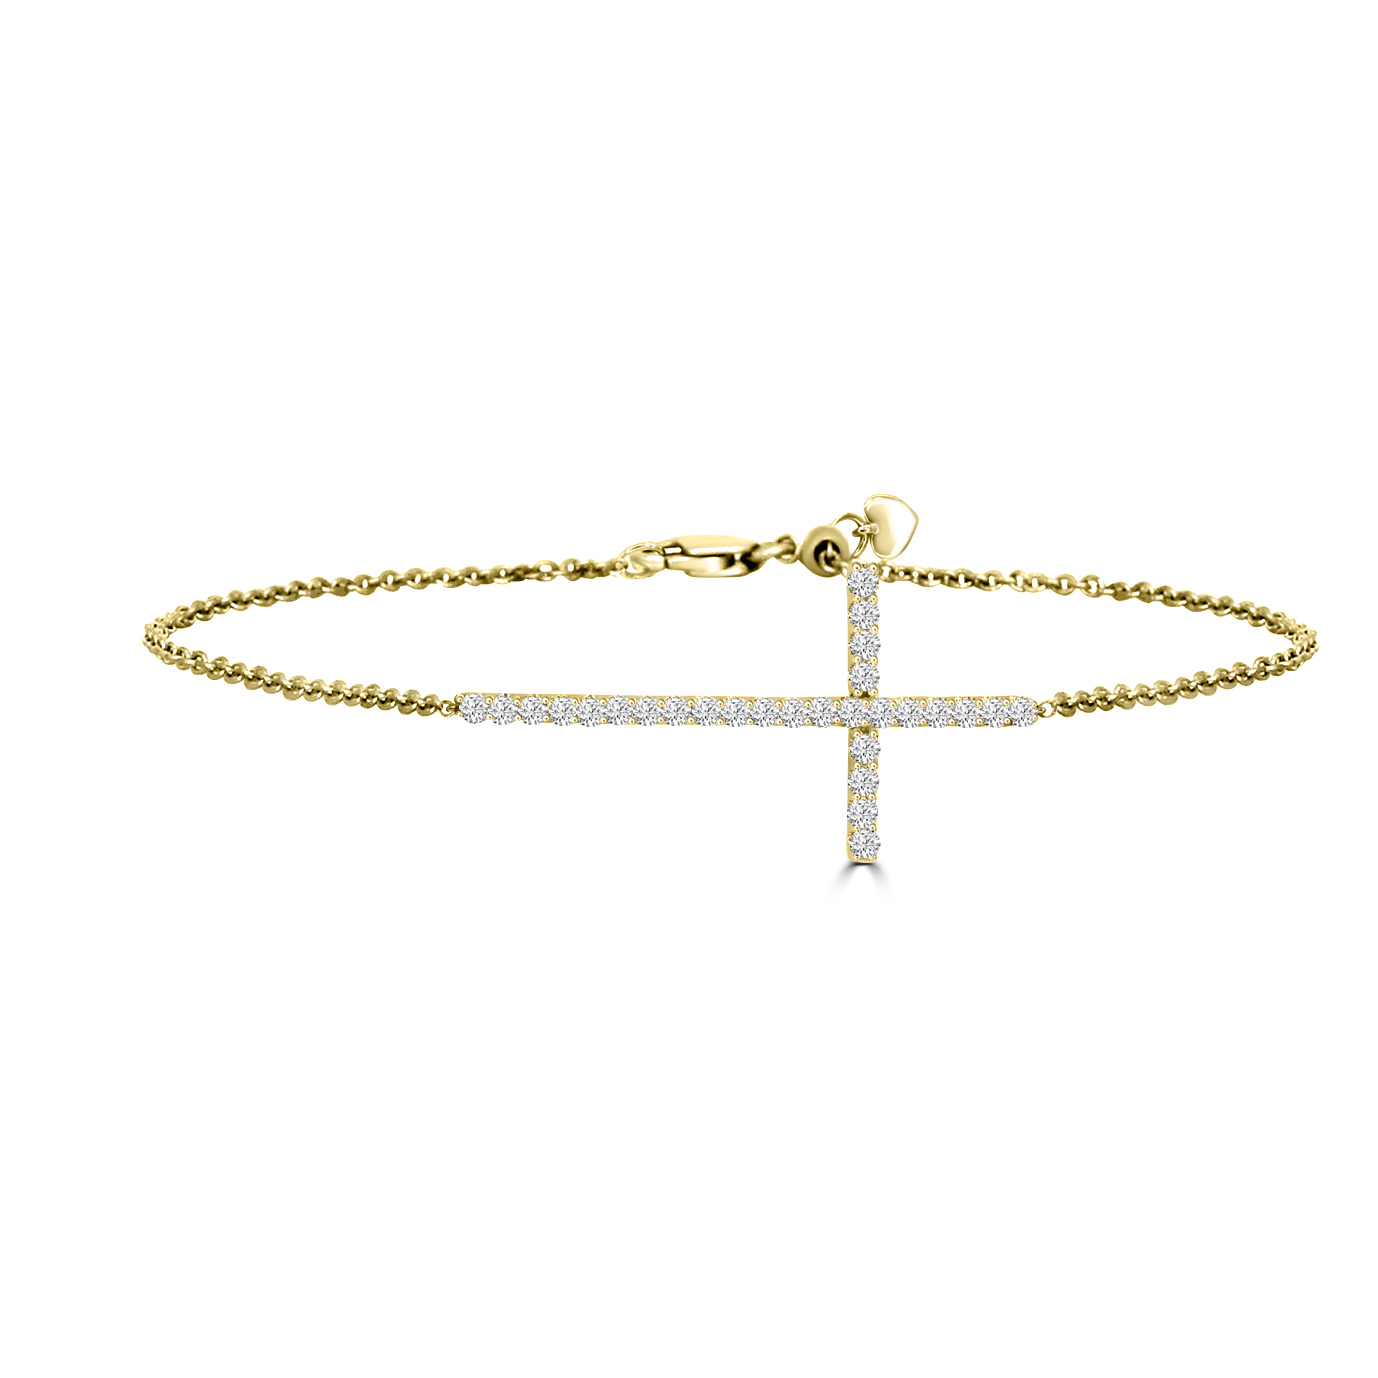 Bracelet 750/18 K or jaune avec diamants 0.50 ct H/si, Croix